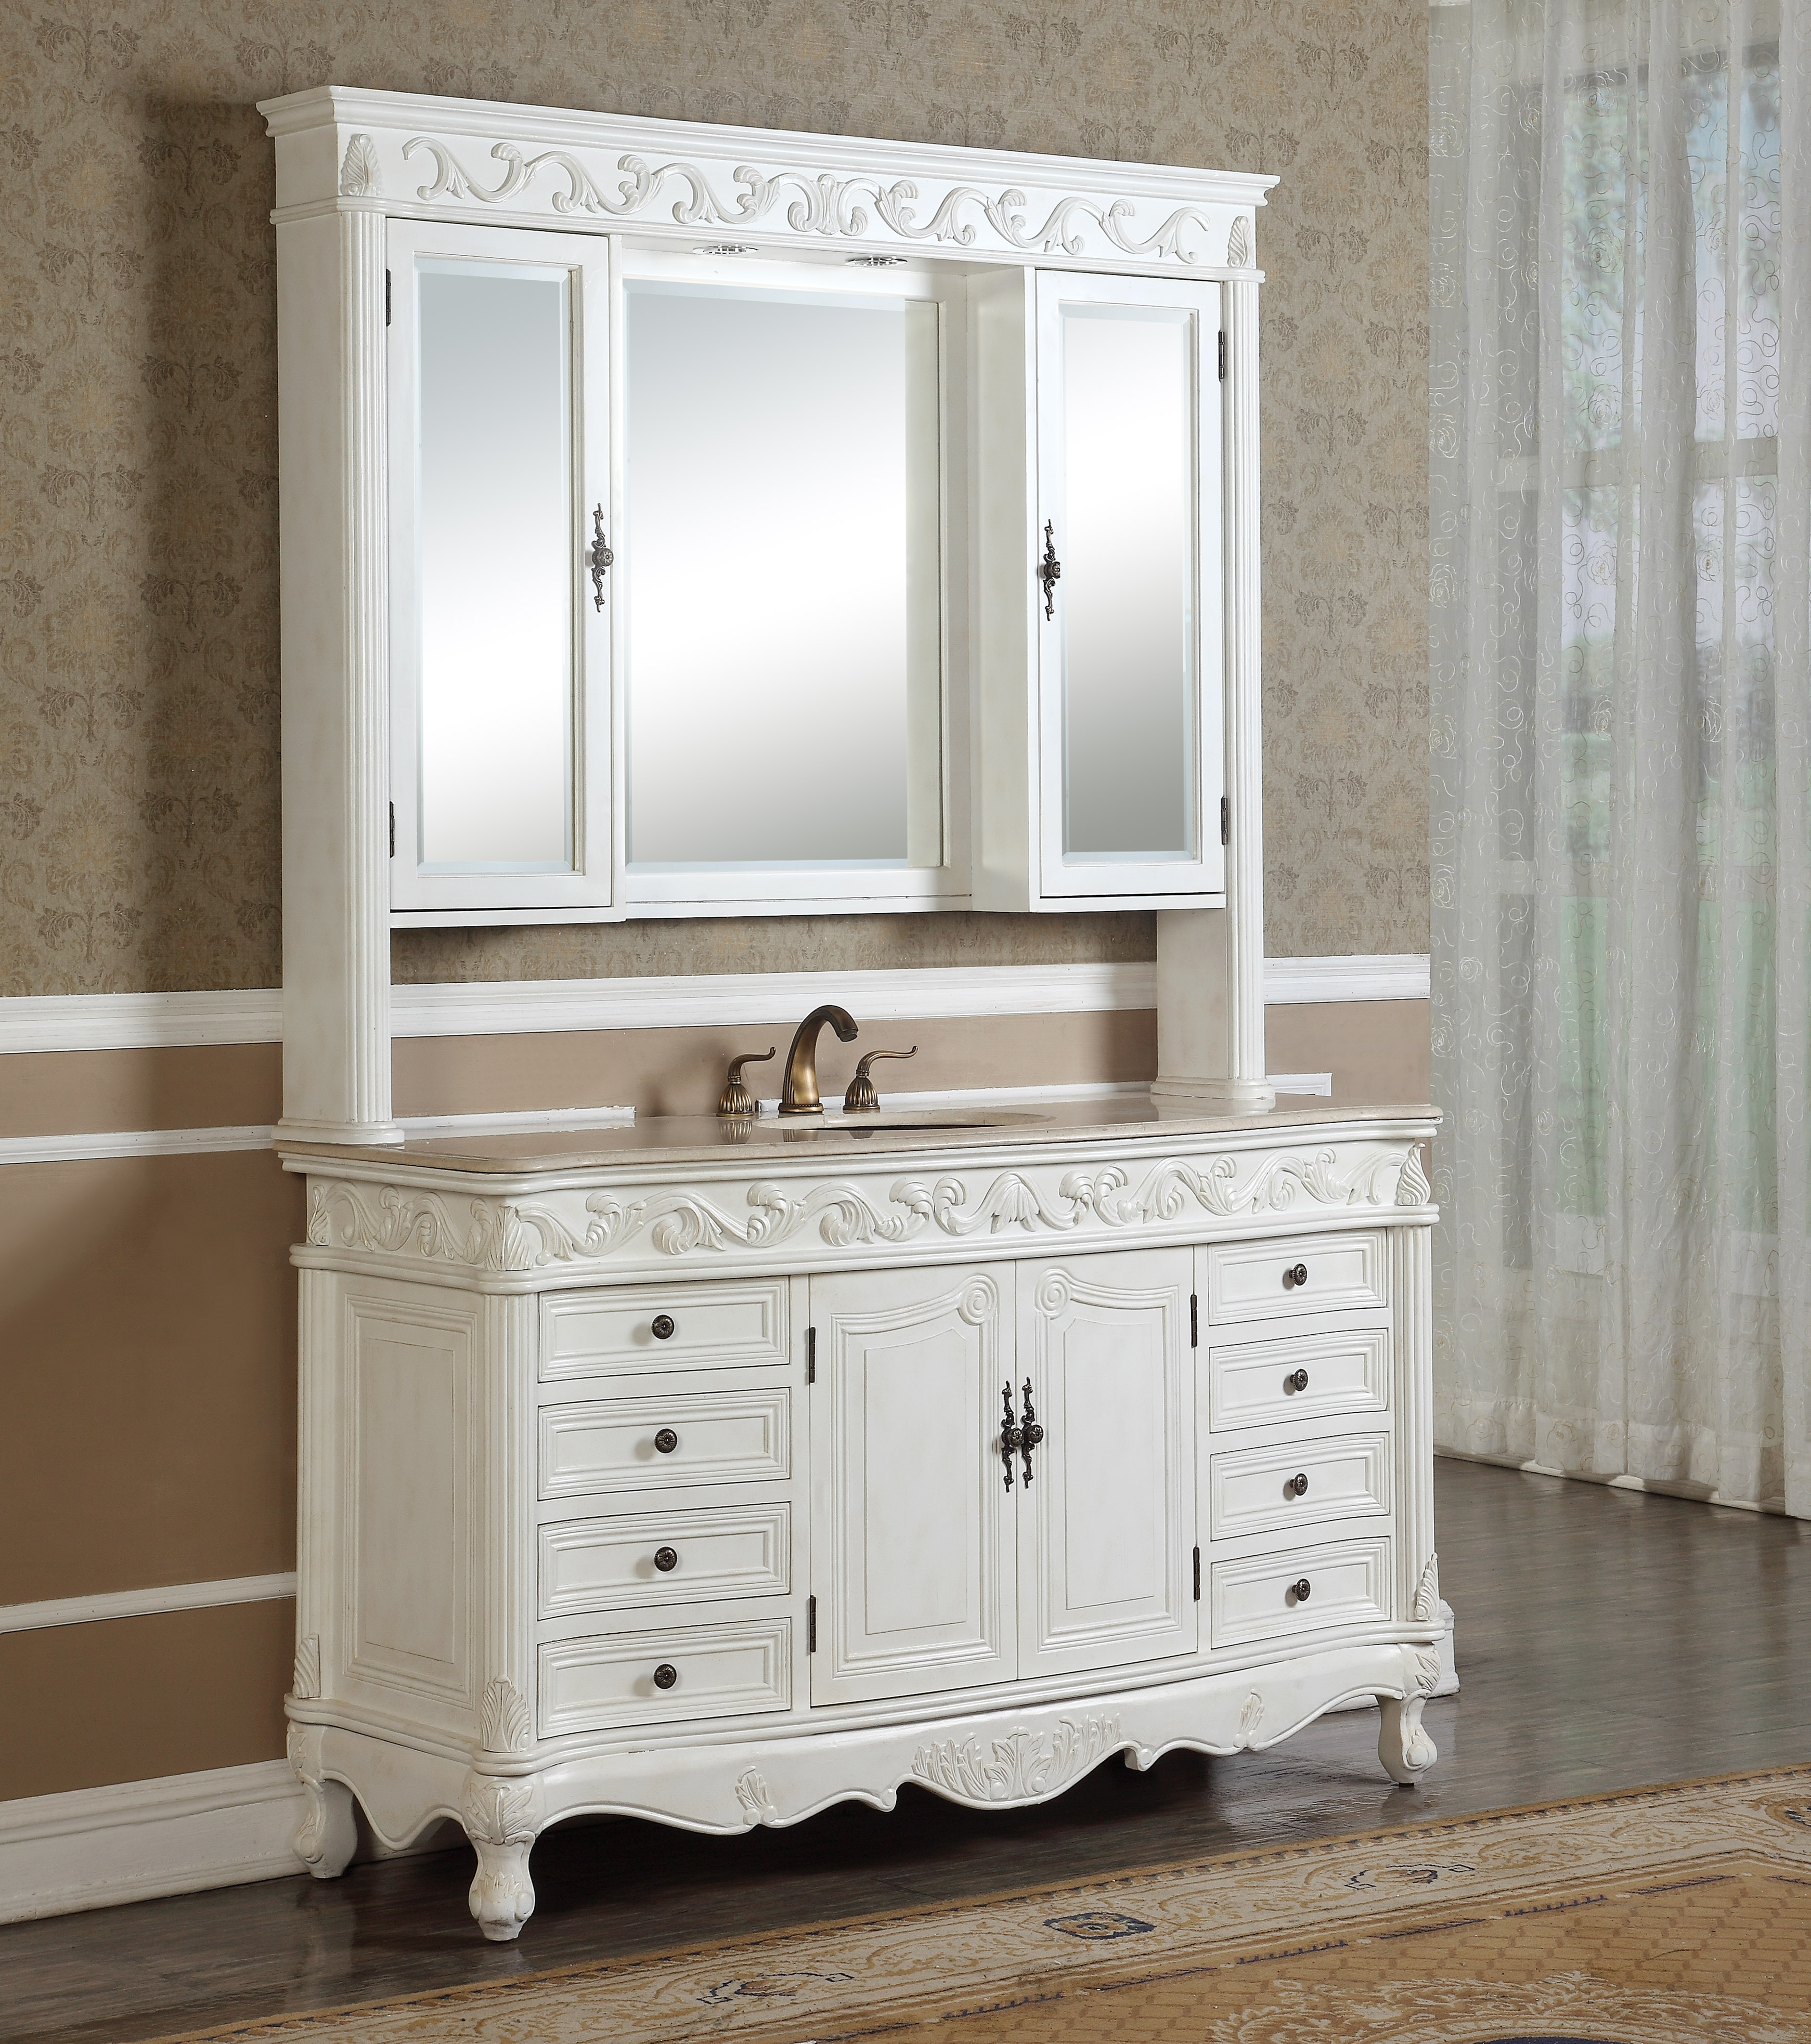 """60"""" Antique White with Matching Medicine Cabinet, Mirror, and Linen Cabinet option, Imperial White Marble Top"""